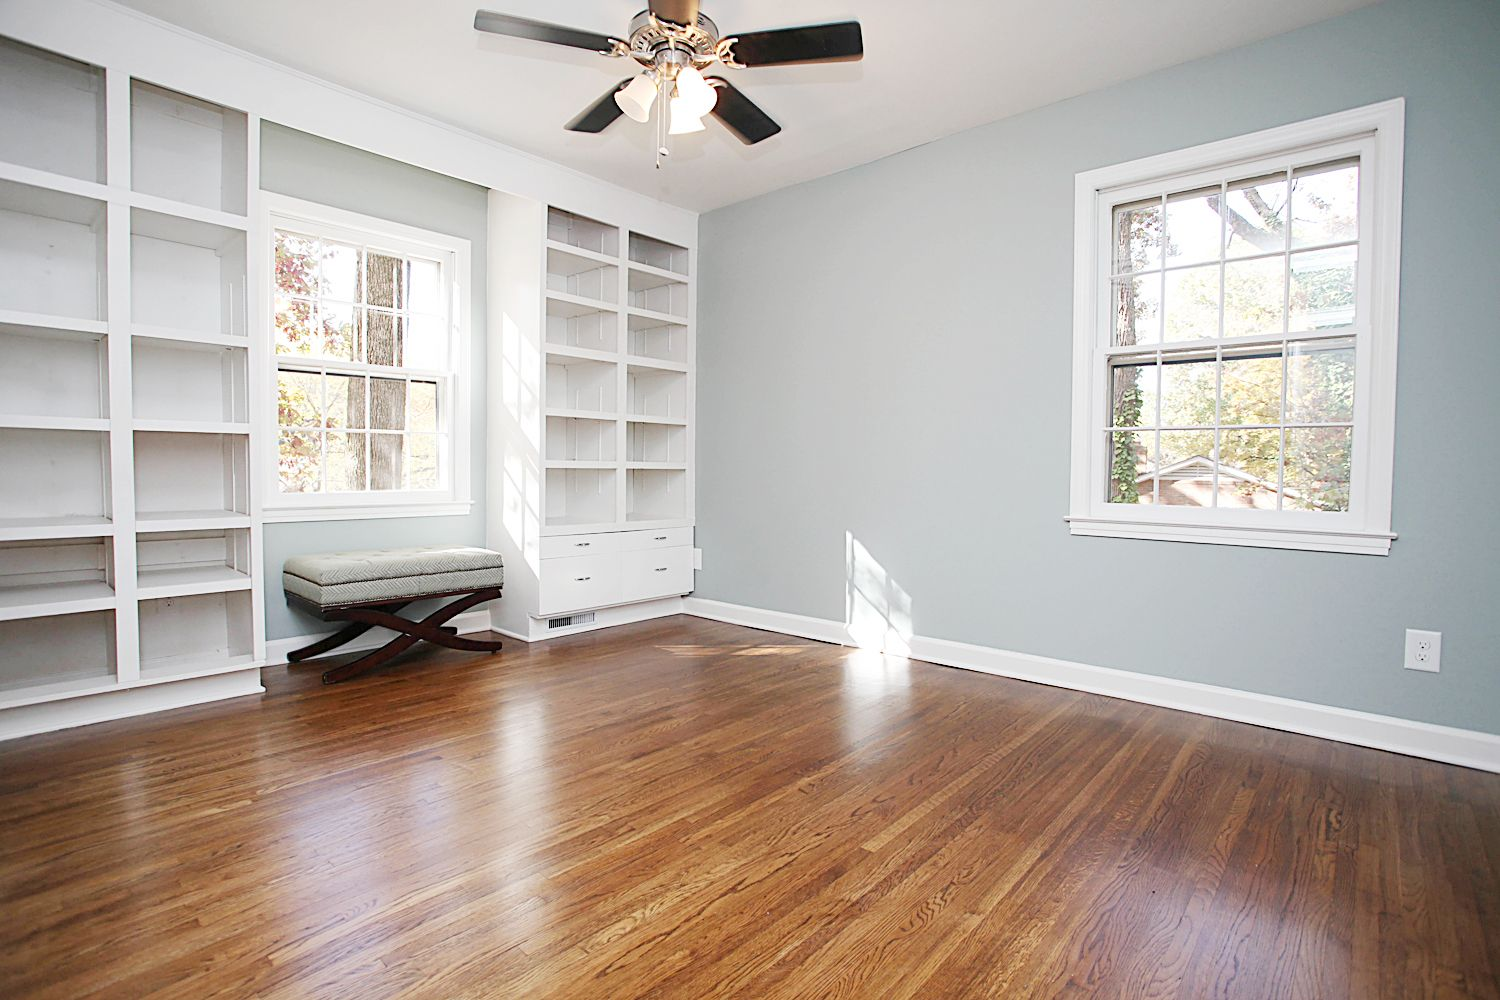 Like The Built Ins Over The Window And The Paint Color. Under Sink Kitchen Bin. Kitchen Sink Disposer. The Kitchen Sink Movie. Extra Large Kitchen Sinks. Kitchen Sink Plug Hole Fitting. Kitchen Sink Oakley Backpack Review. Kohler Double Kitchen Sink. How To Clean The Kitchen Sink